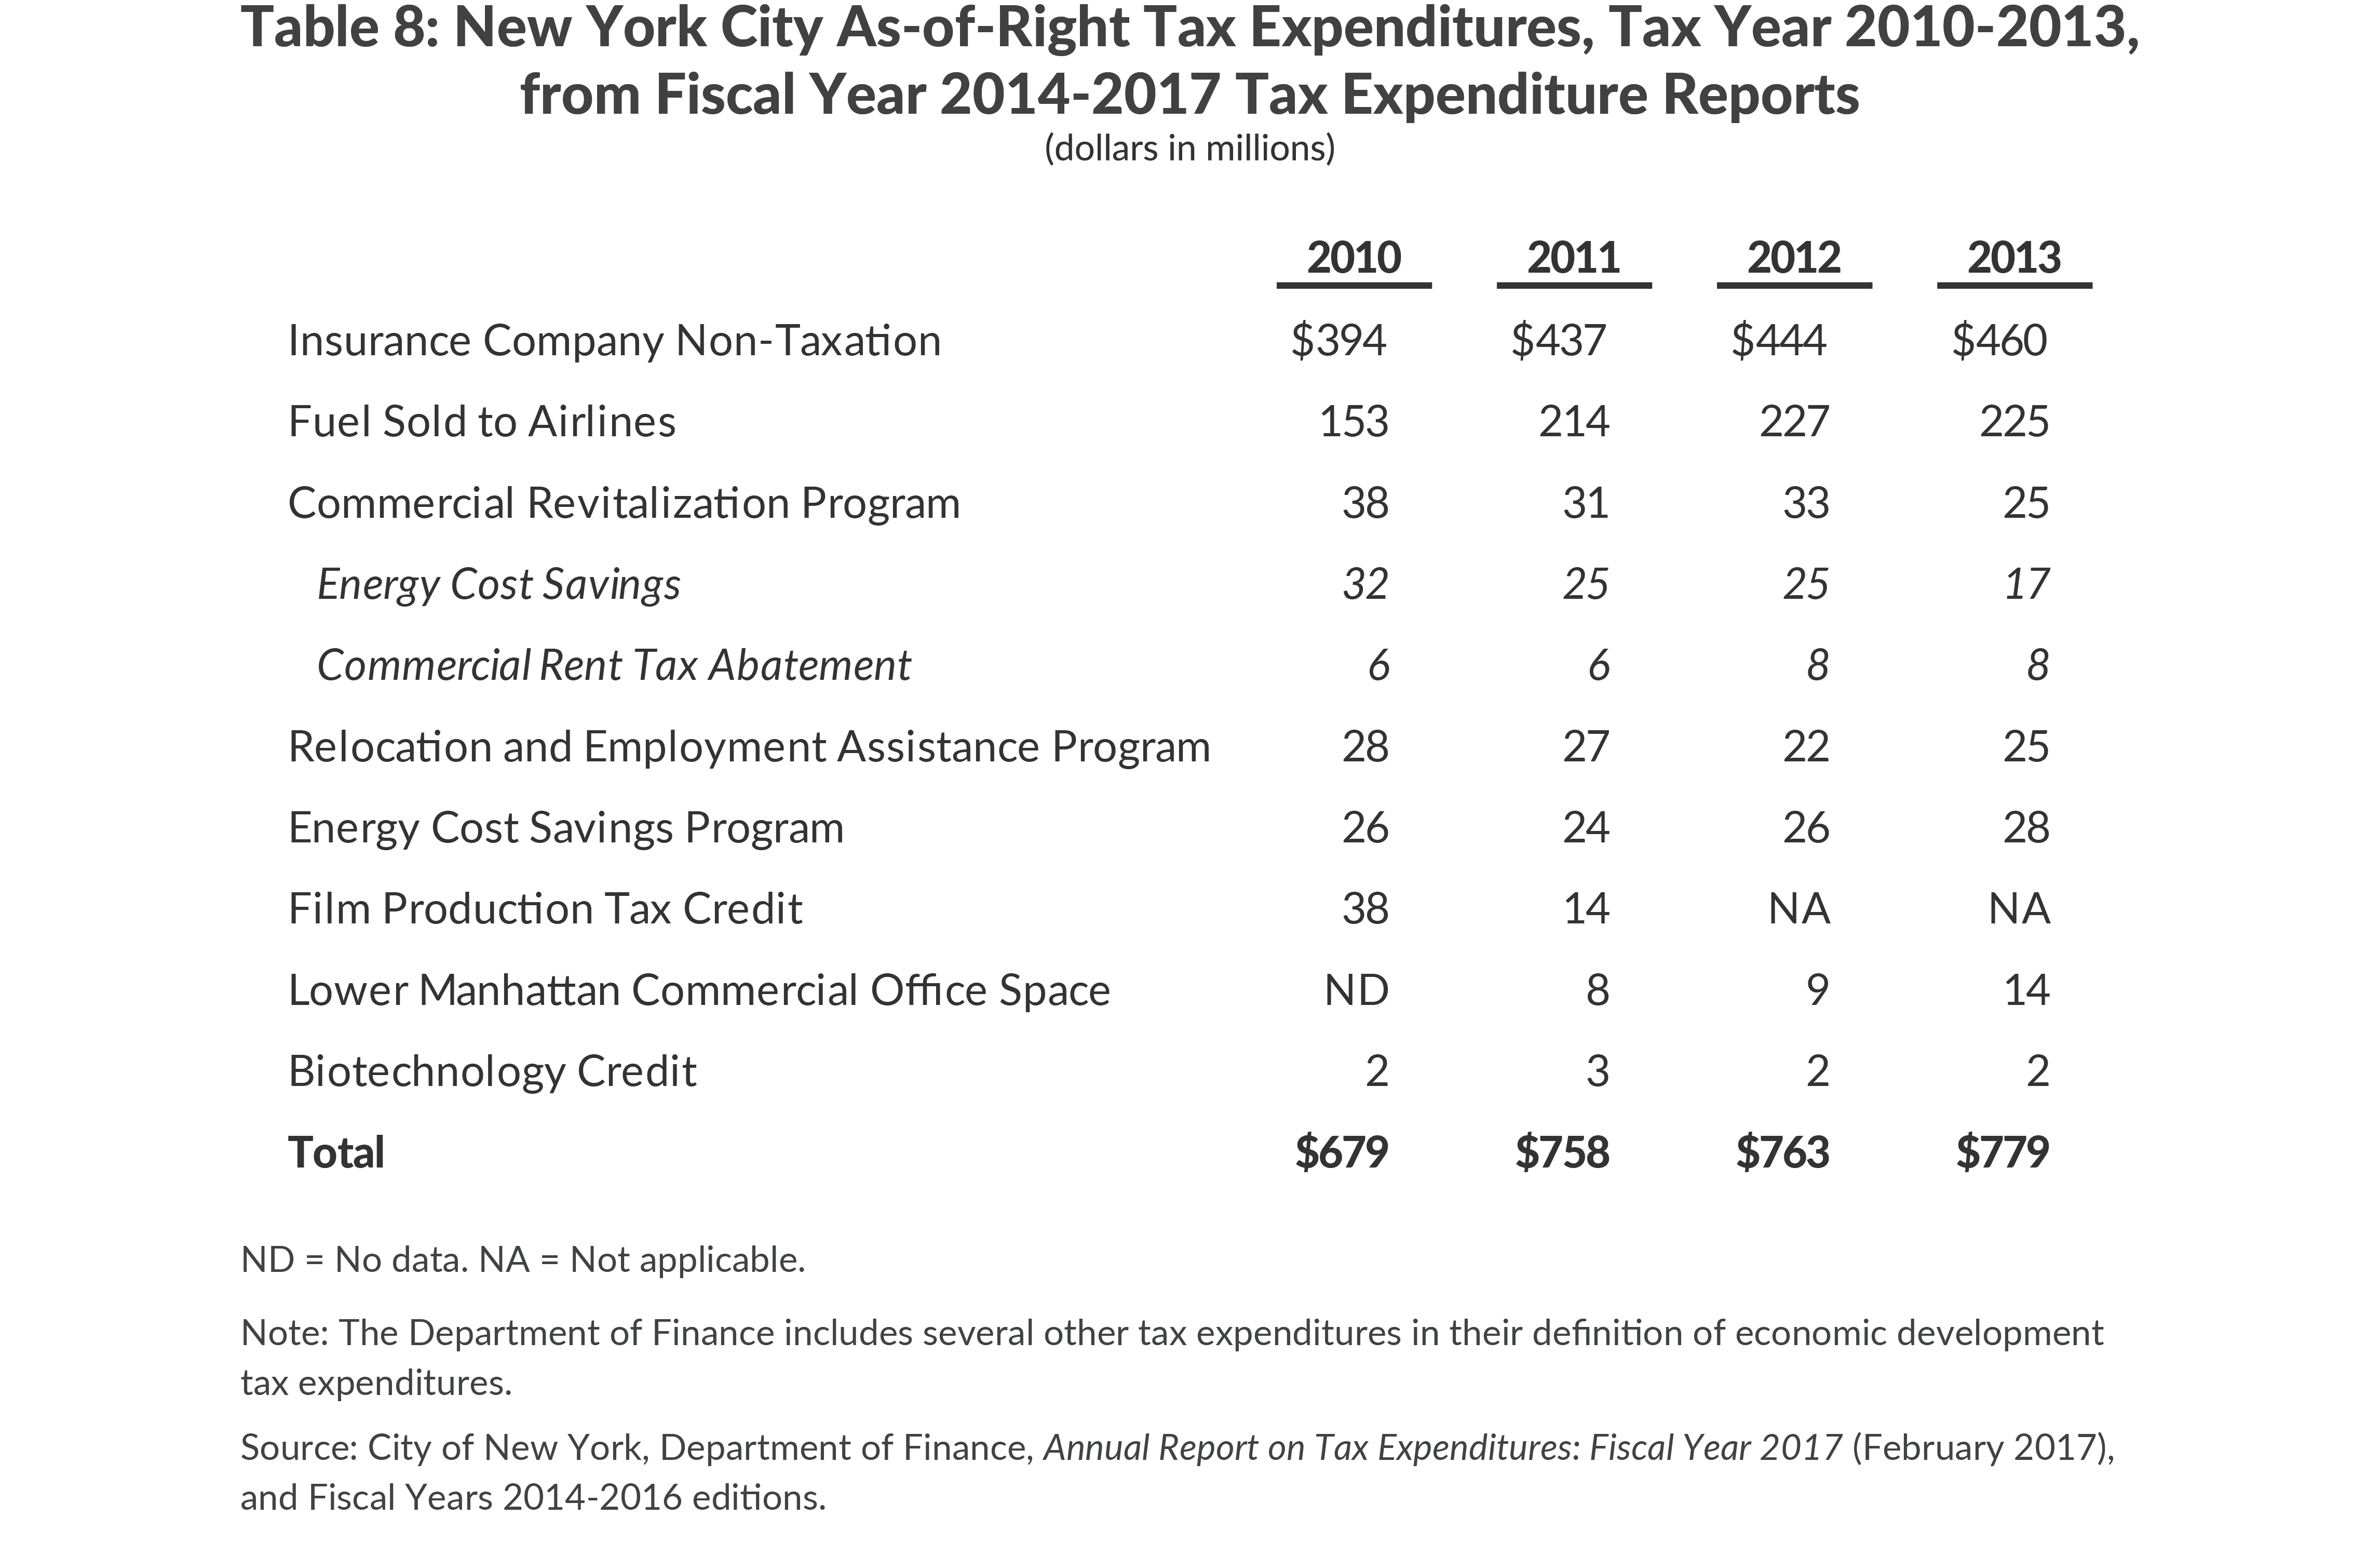 New York City As-of-Right Tax Expenditures, Tax Year 2010-2013